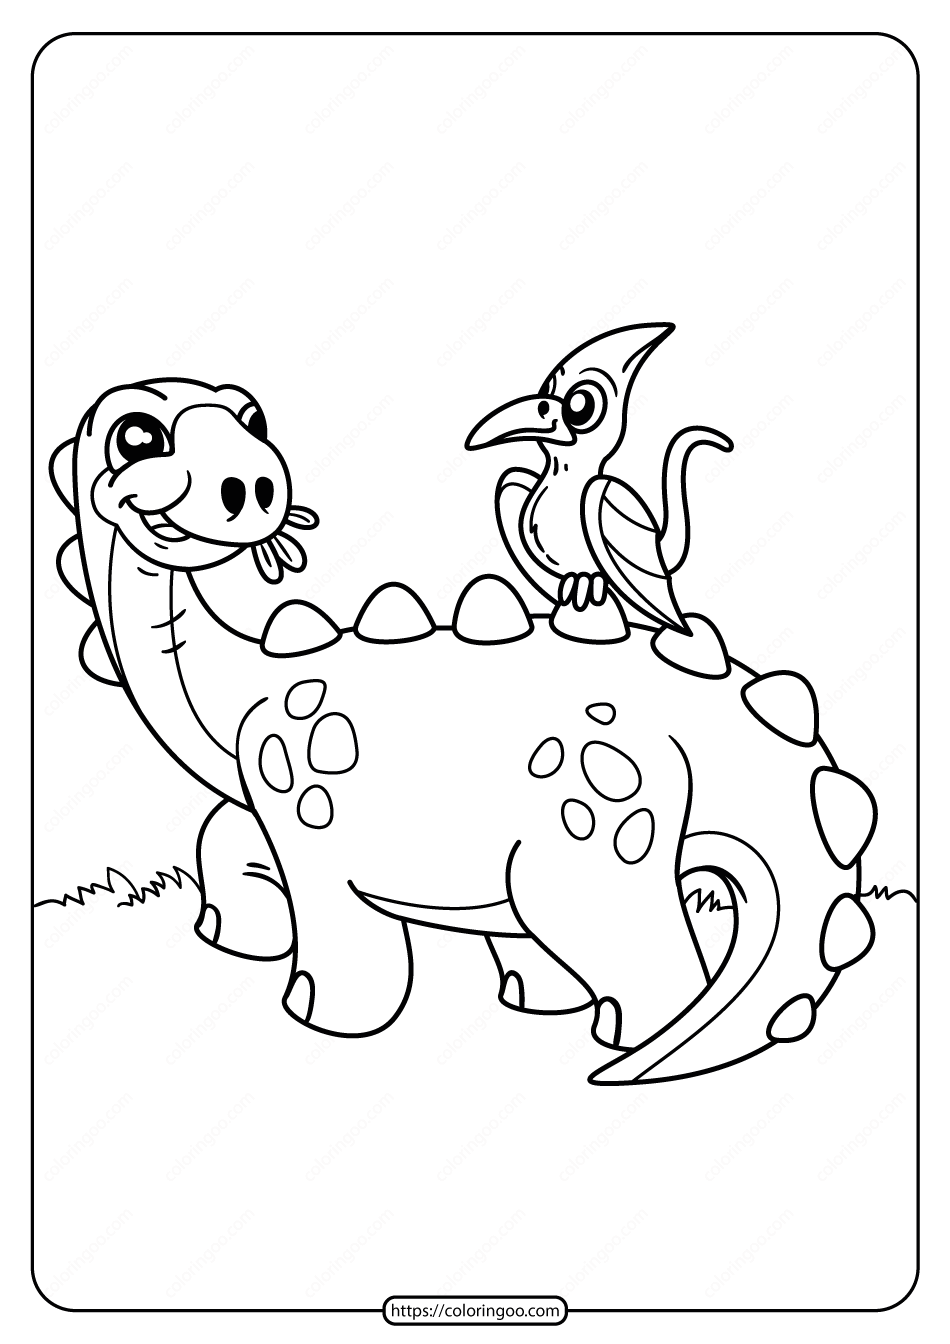 Free Printable Animals Dinosaur Coloring Pages 02